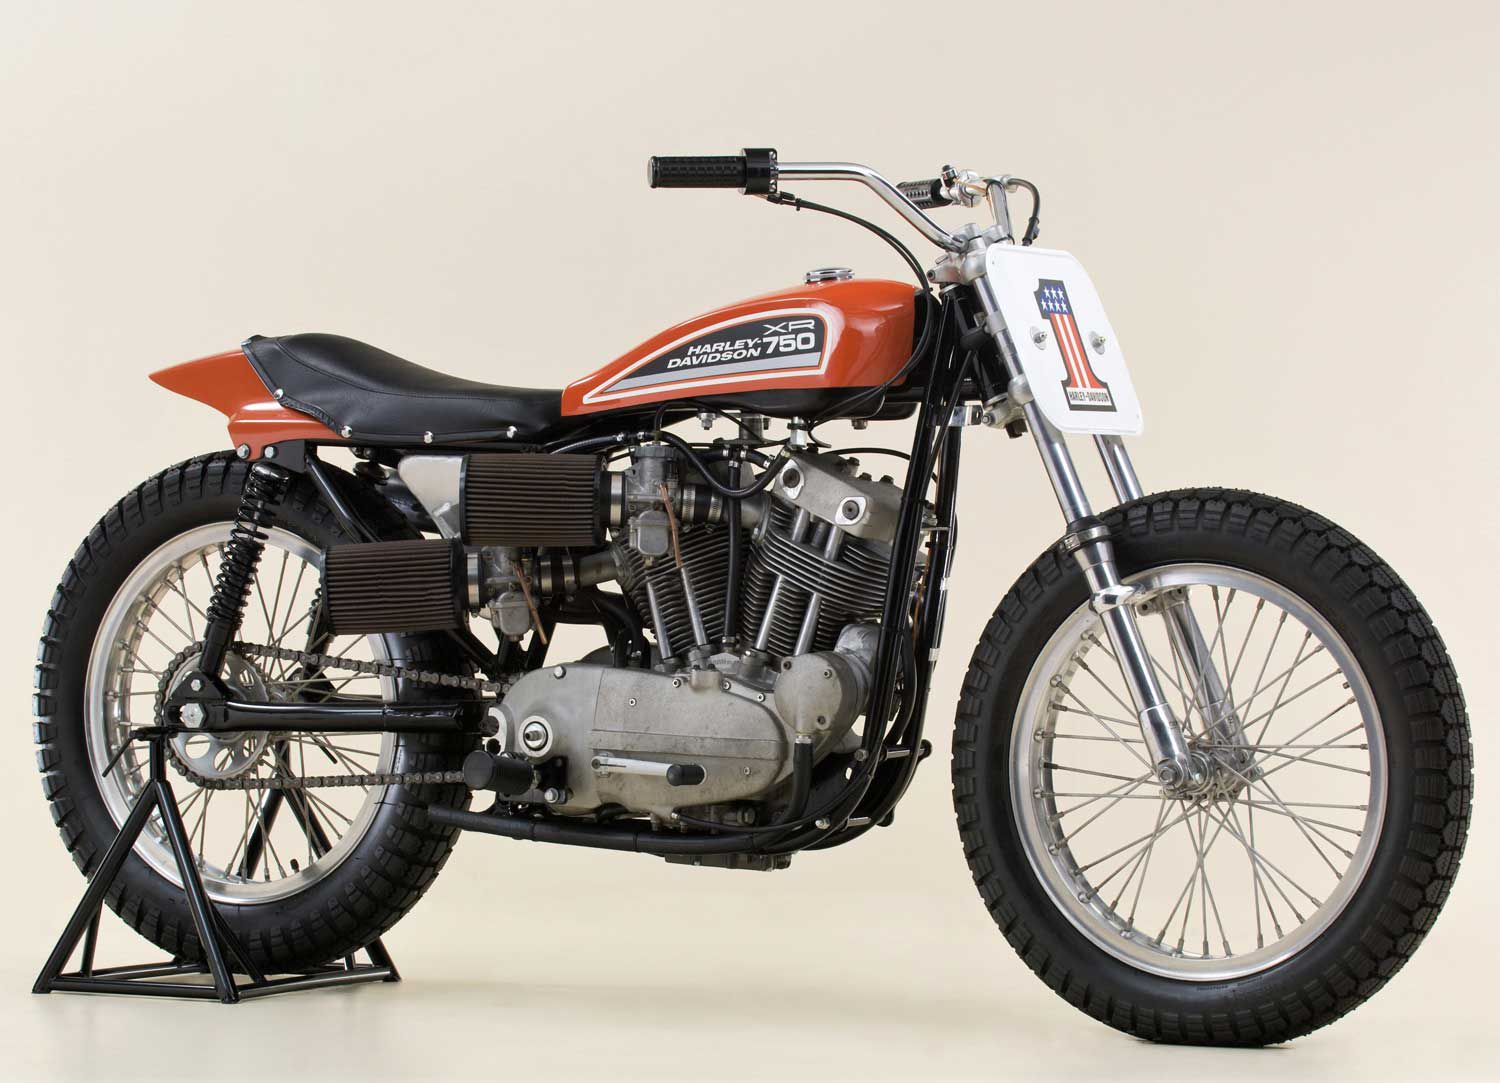 The XR750 was Sportster-based, but heavily modified to better compete against foreign marques' OHV-engined racers of the time. This bike is circa 1975.